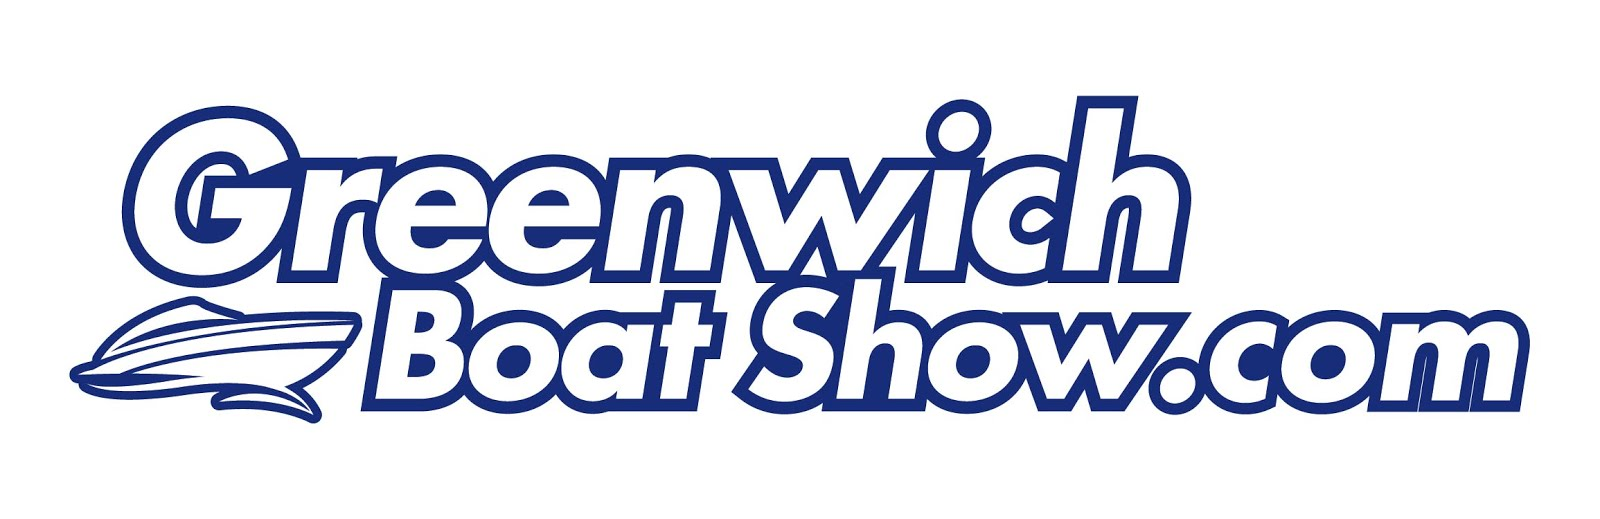 Greenwich Boat Show, a unique in-water experience, April 8-9, 2017